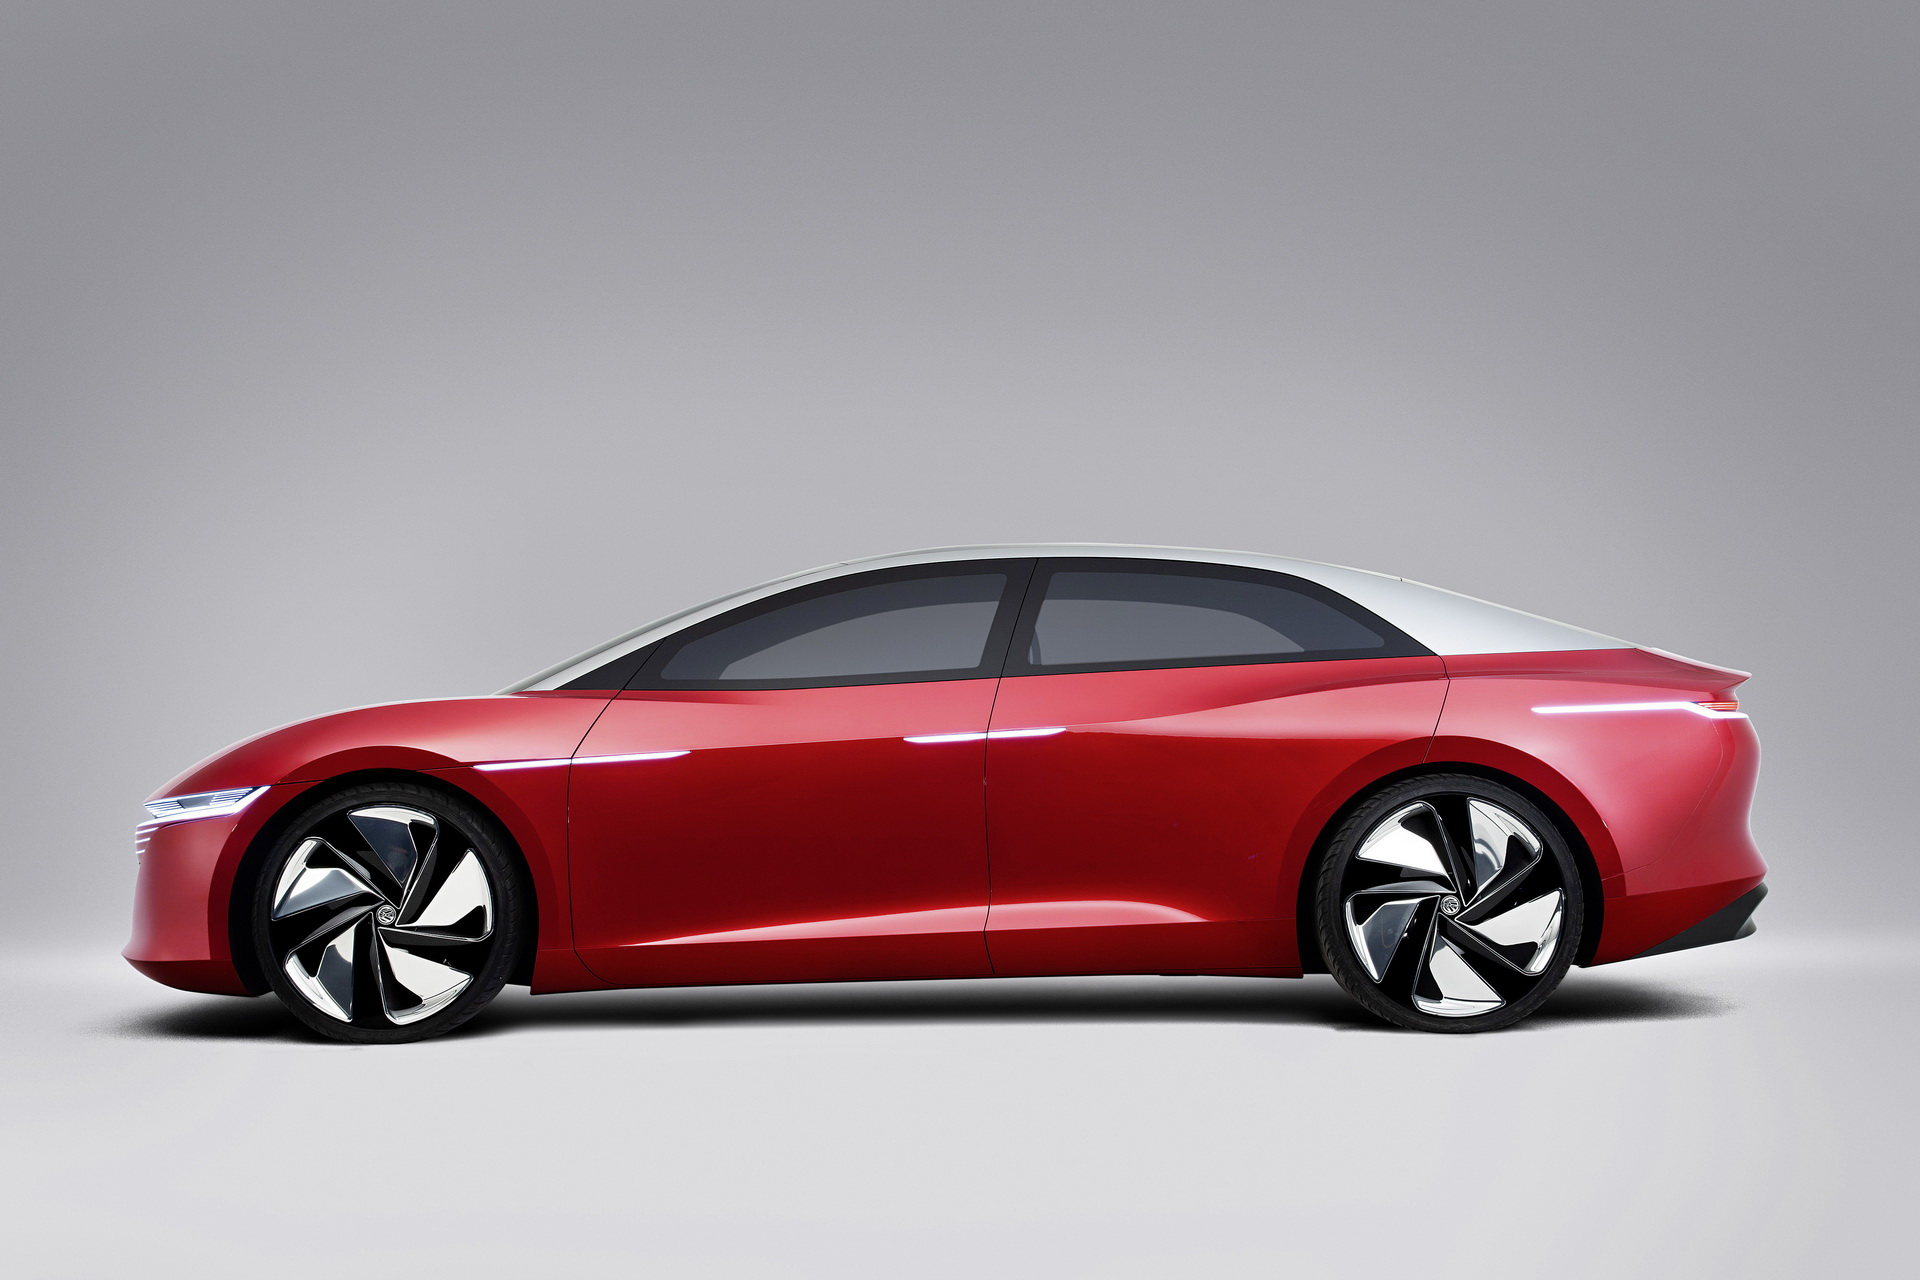 Vw Id6 Coming 2023 With 435 Mile Range 5